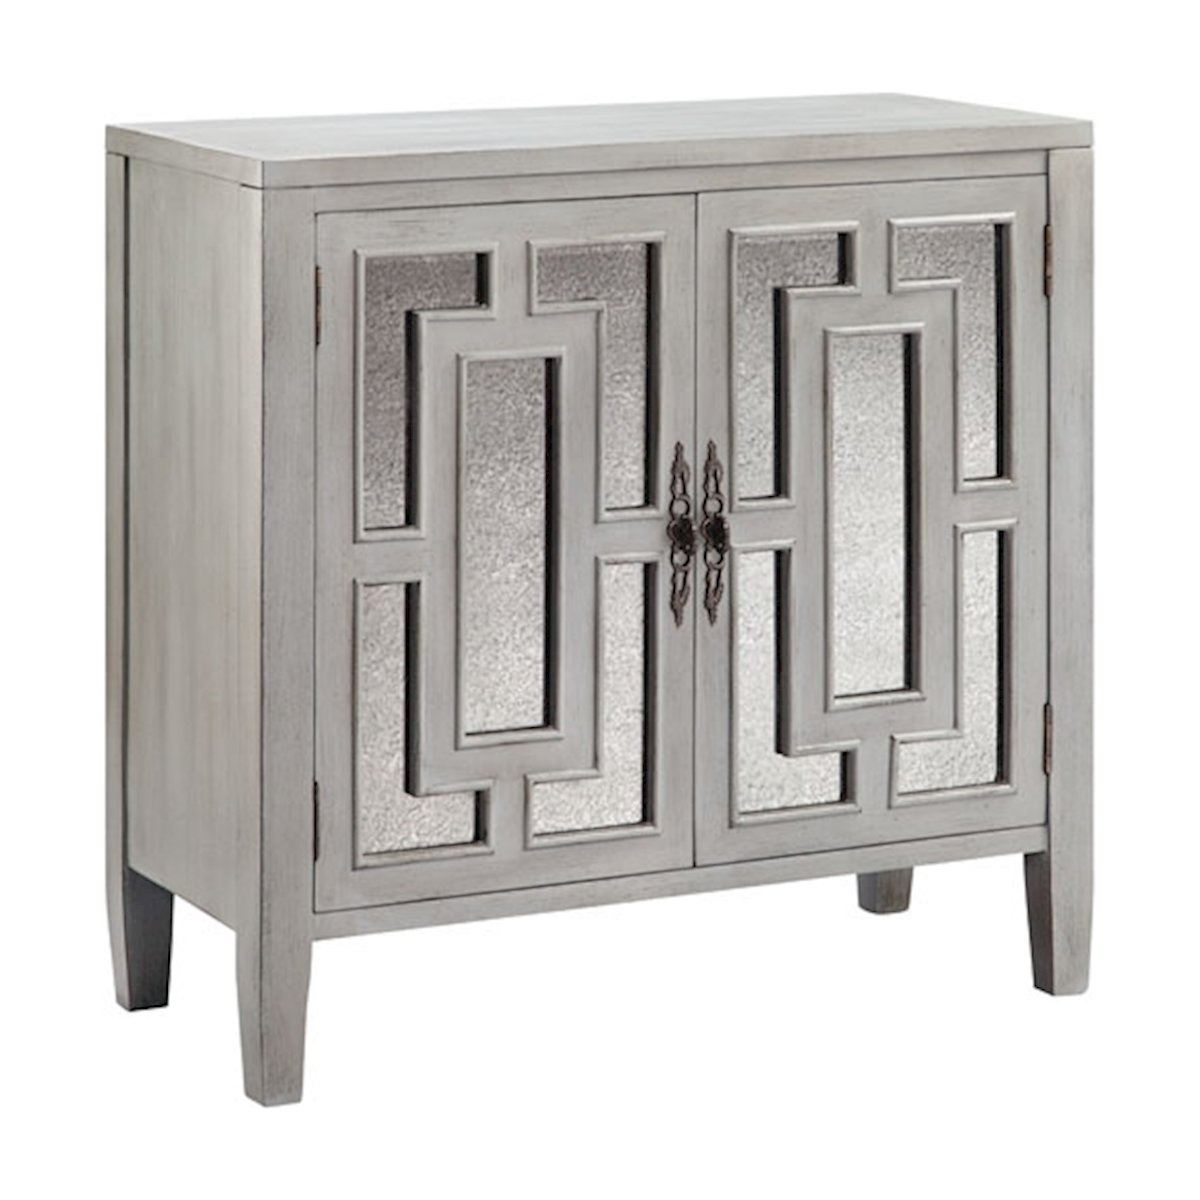 Stein World Cade 2 Door Accent Cabinet & Reviews | Wayfair in Parrish Sideboards (Image 26 of 30)